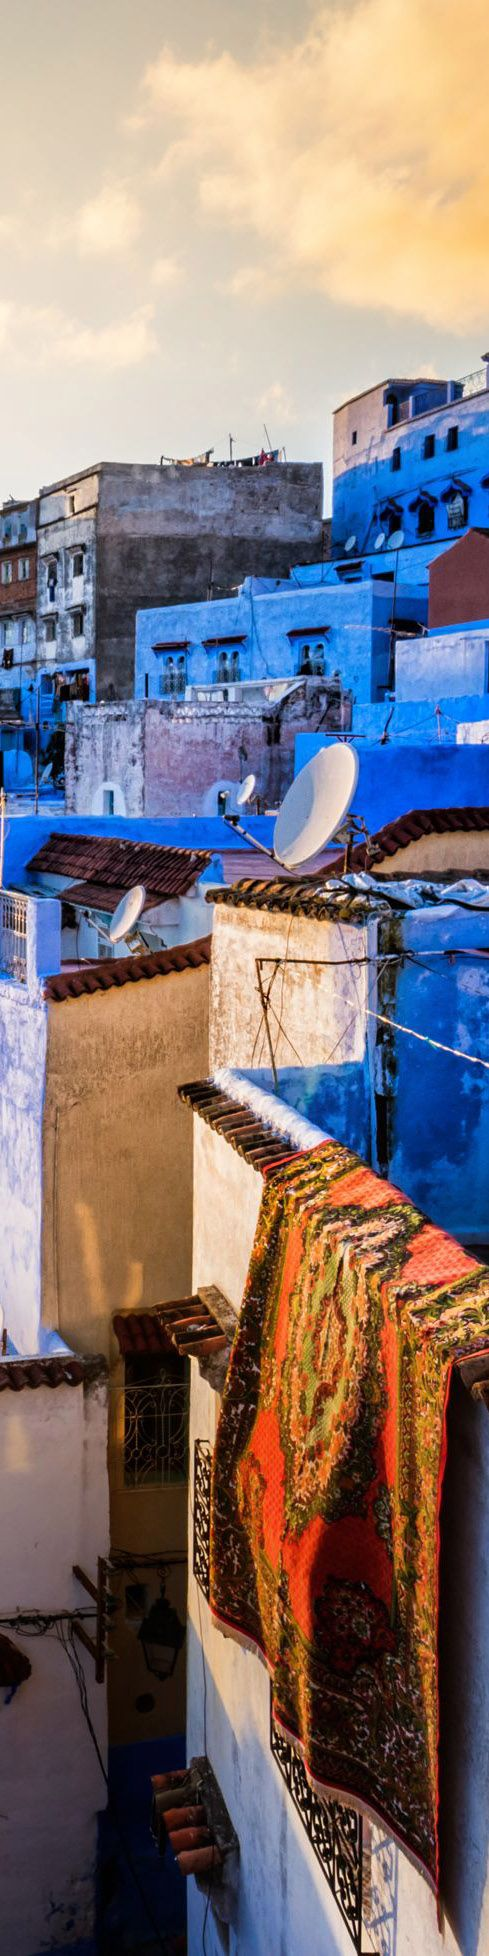 """Blue city in Morocco - from the Exhibition: """"Cropped for Pinterest"""" - photo from #treyratcliff Trey Ratcliff at http://www.StuckInCustoms.com"""